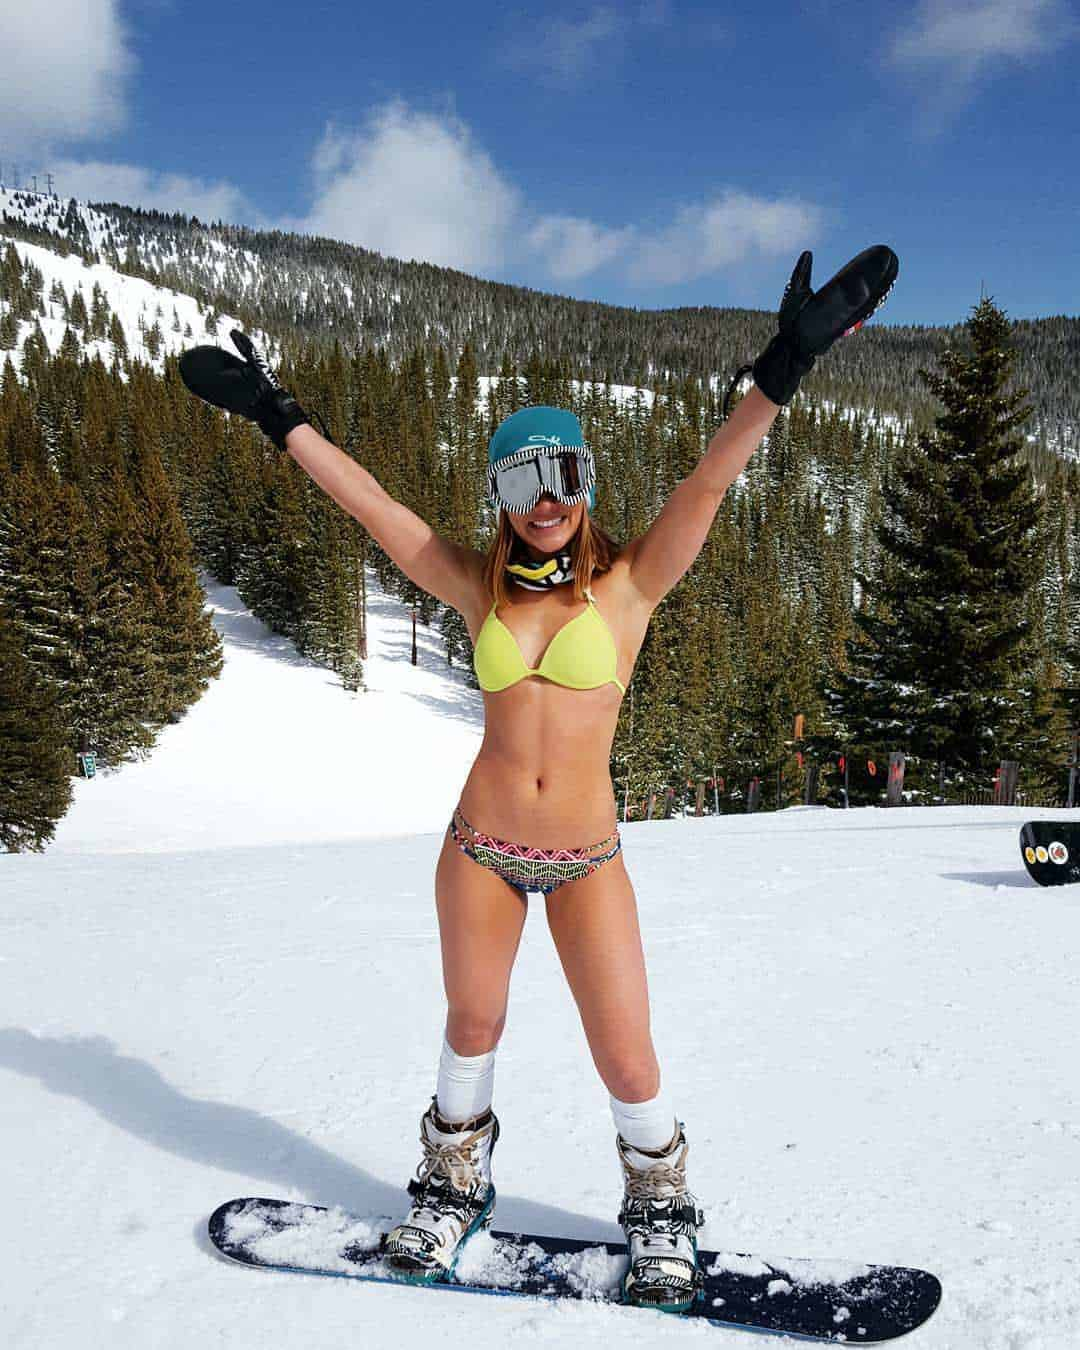 sexy snowboarder female with full equip